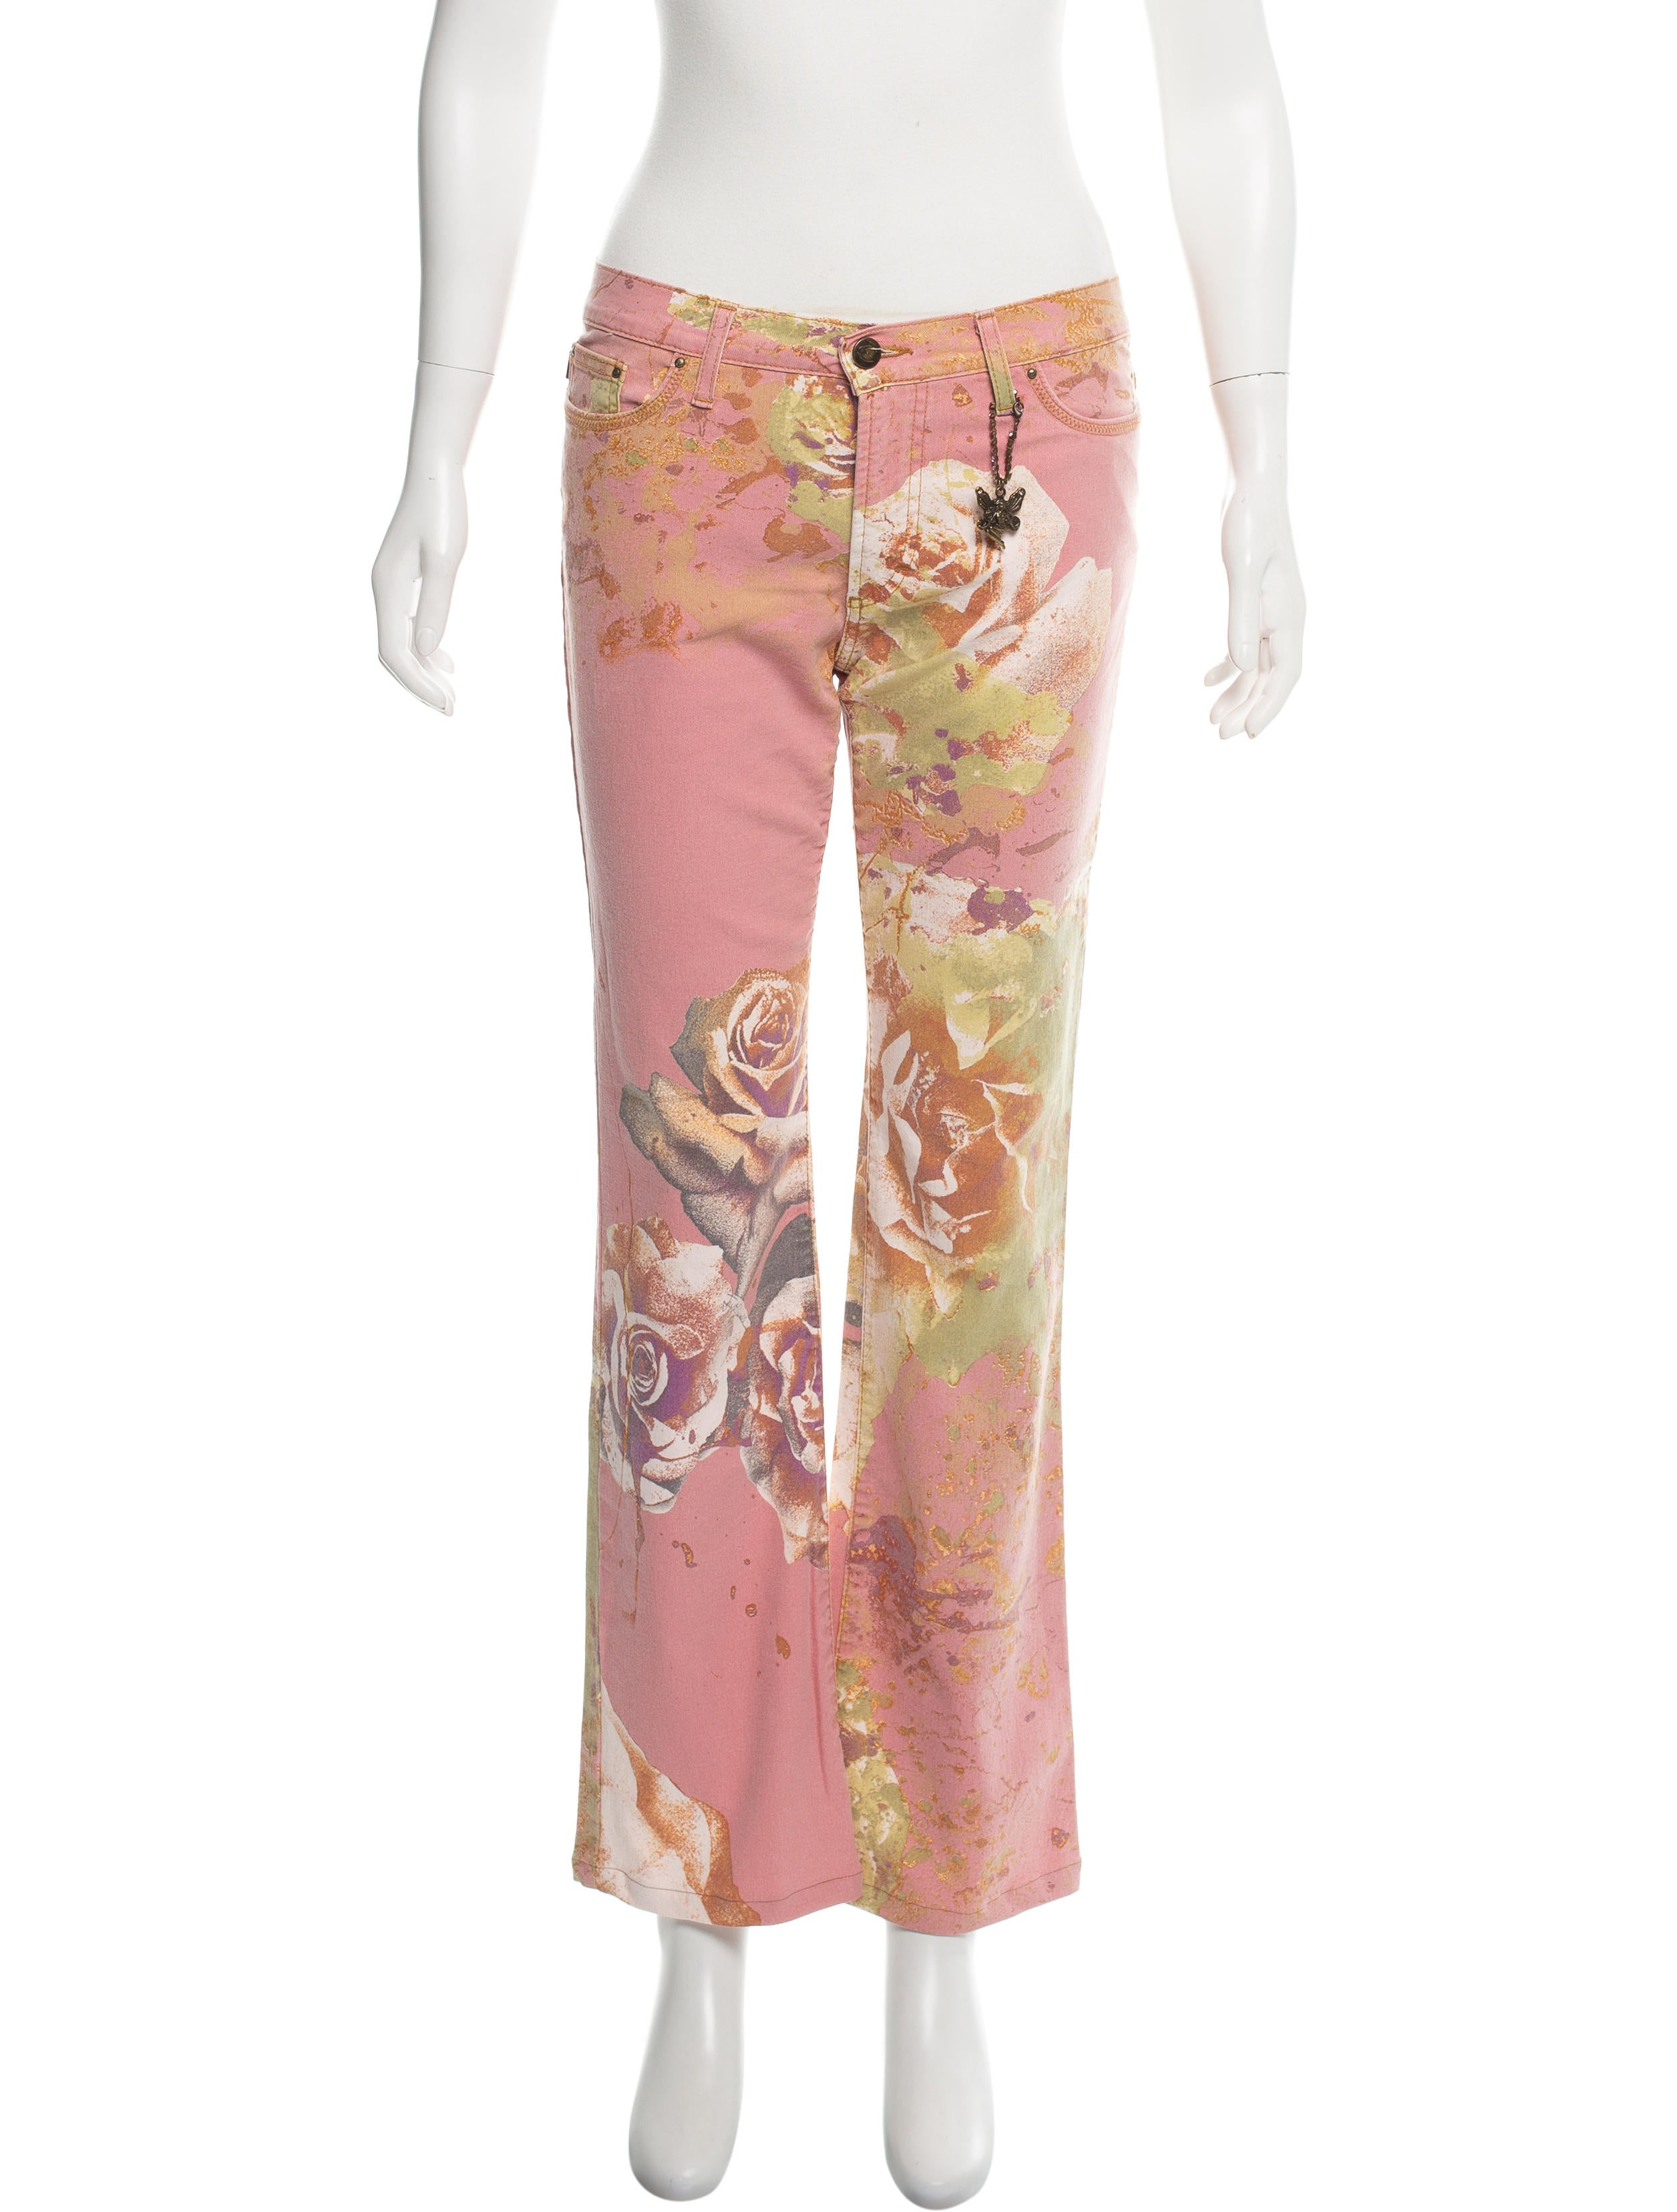 c383c93d4c443 Just Cavalli Floral Print Mid-Rise Jeans w/ Tags - Clothing ...